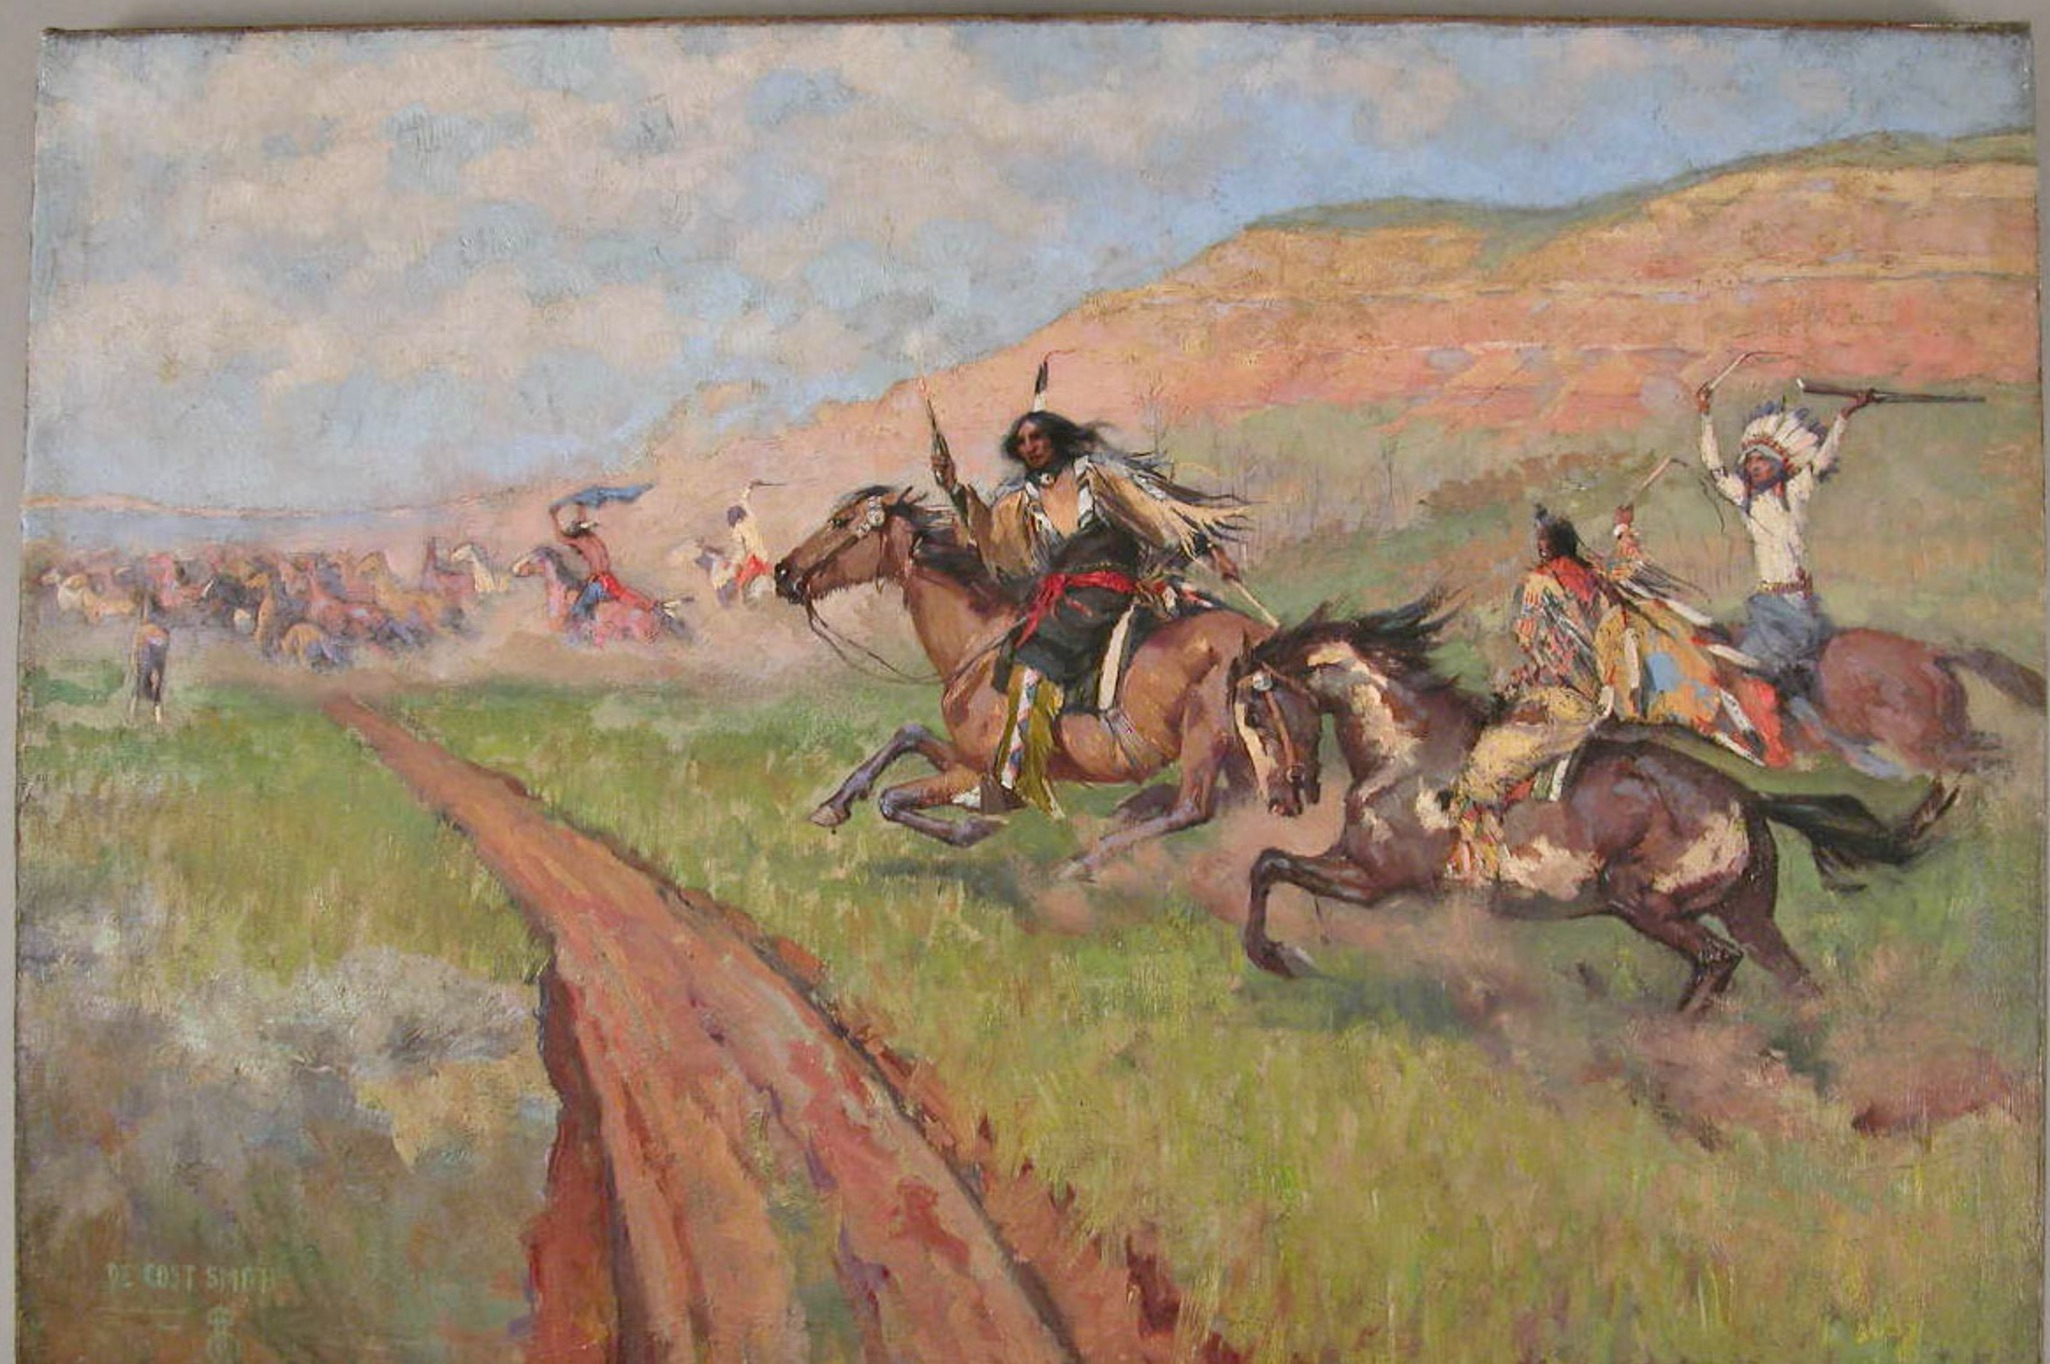 Horse Stealing - DeCost Smith